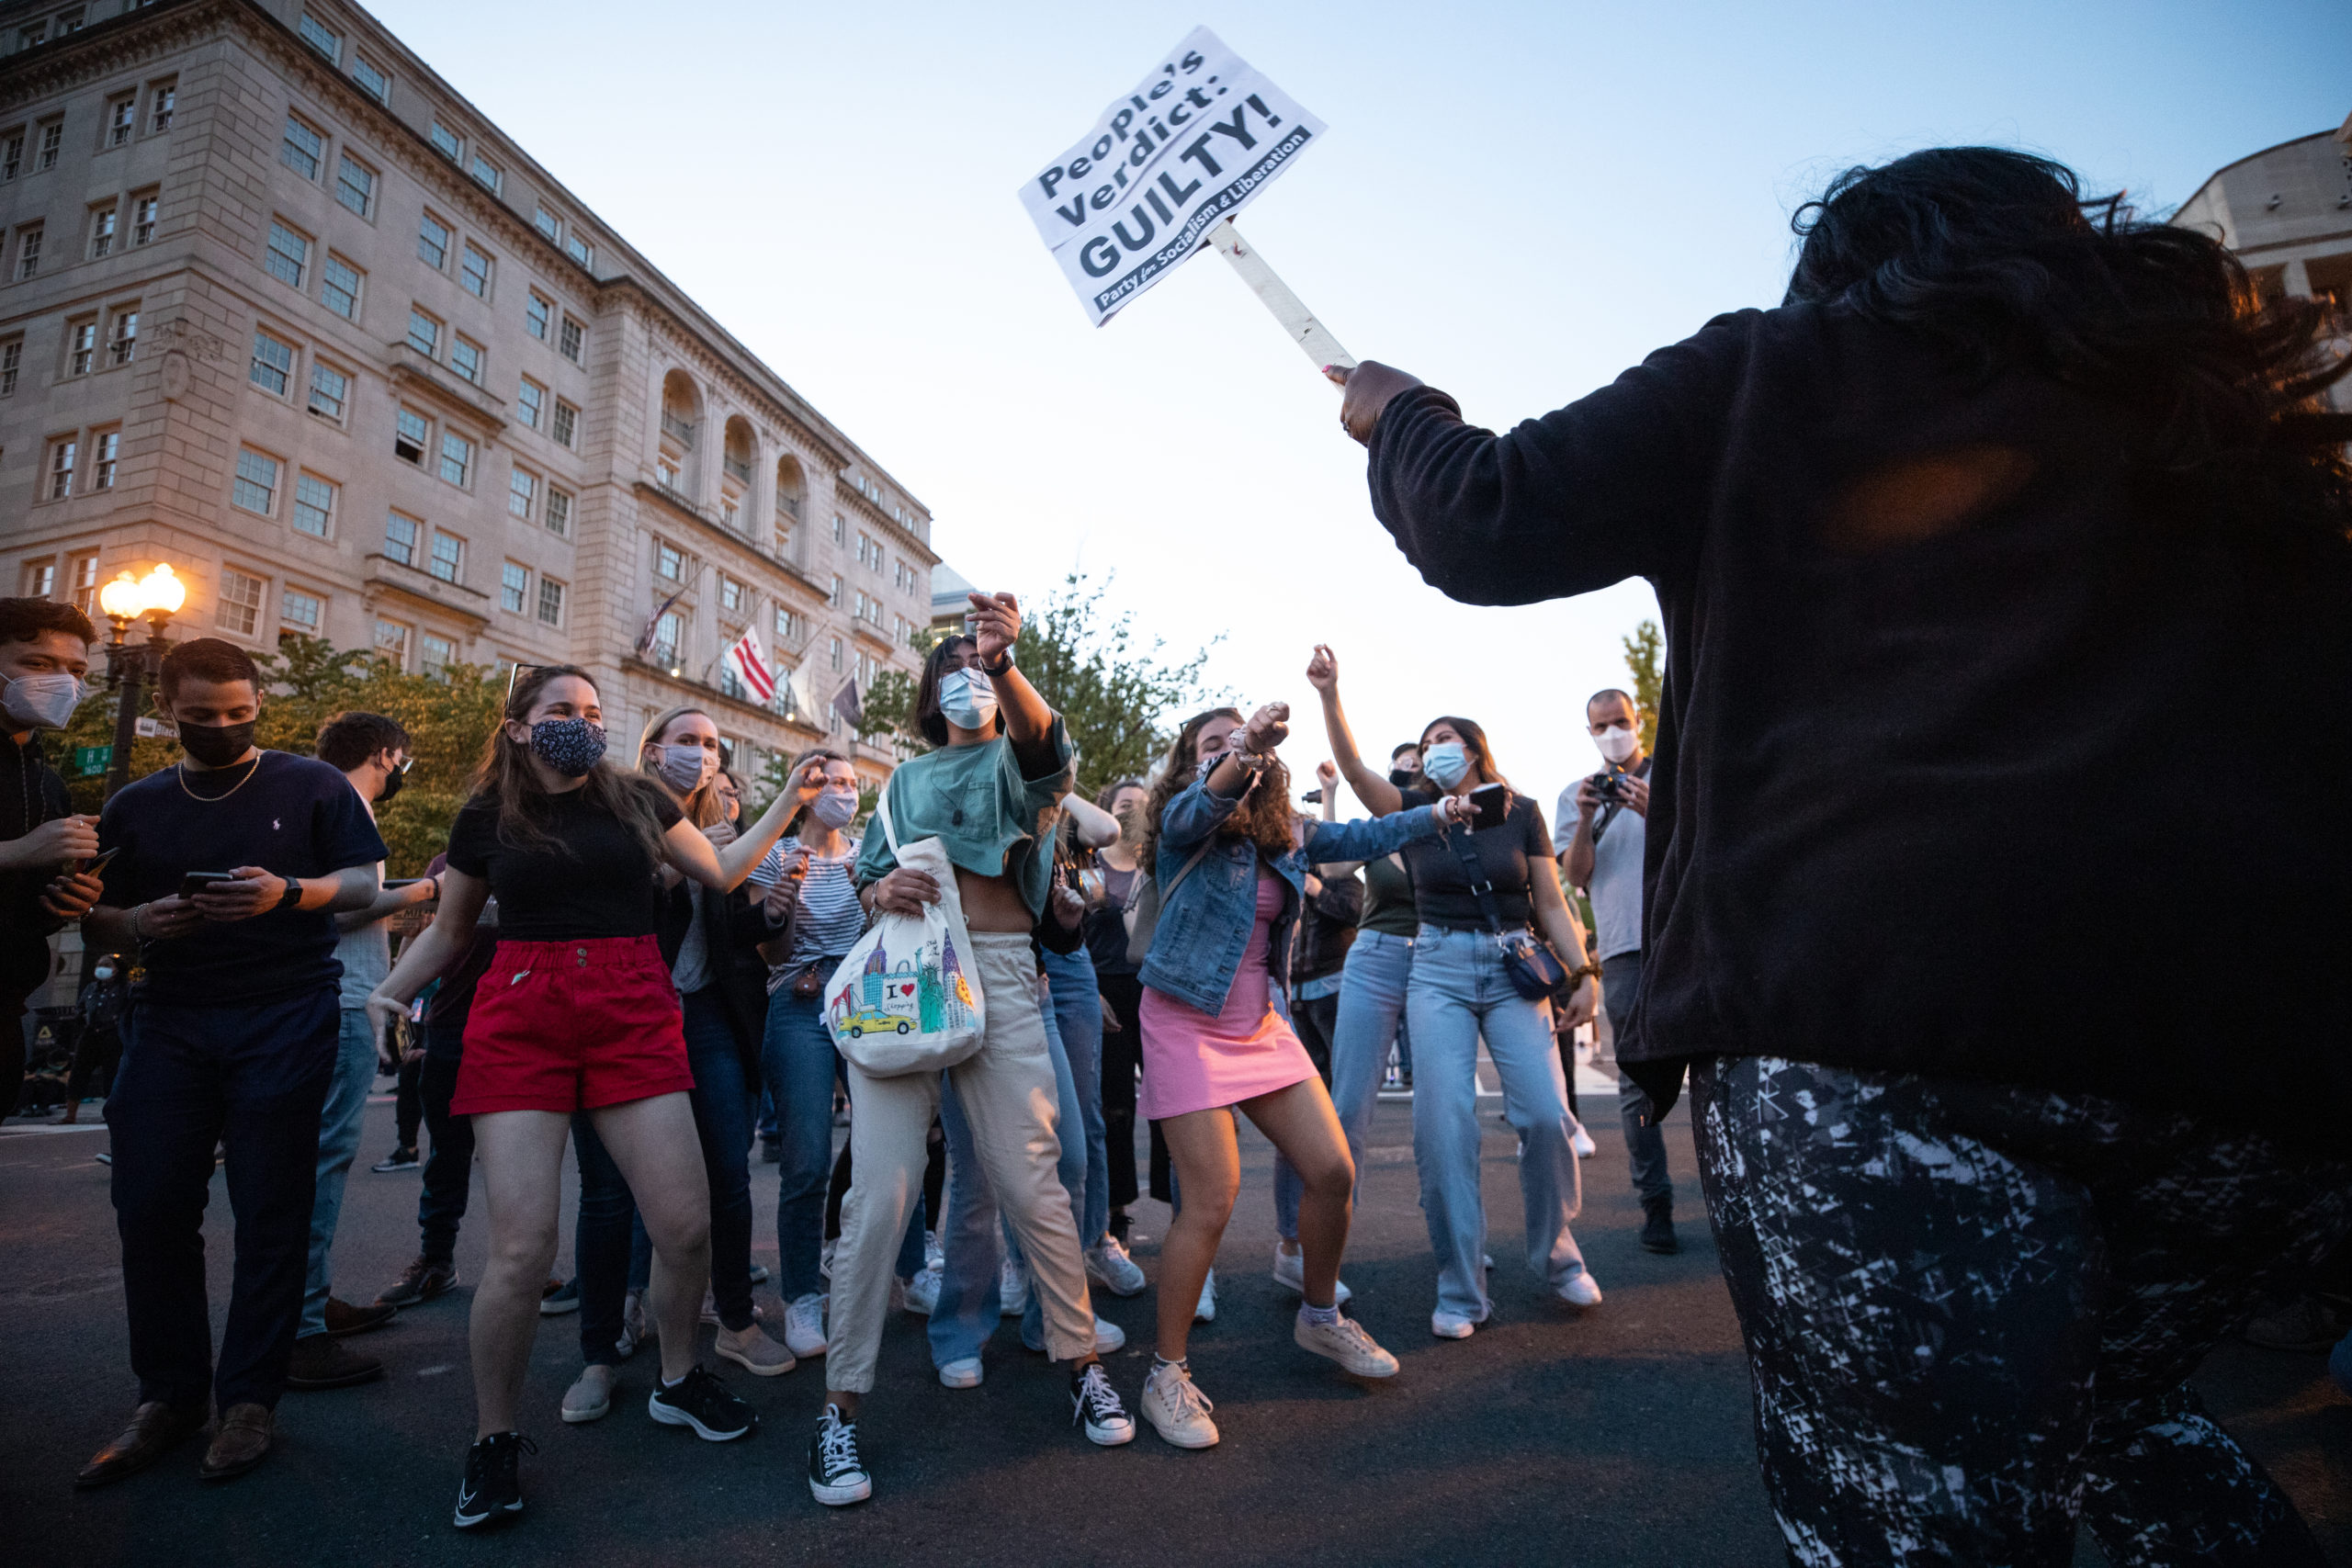 People danced into the night after the jury's decision in the Derek Chauvin trial was announced on April 20, 2021, in Washington, D.C. (Kaylee Greenlee - Daily Caller News Foundation)